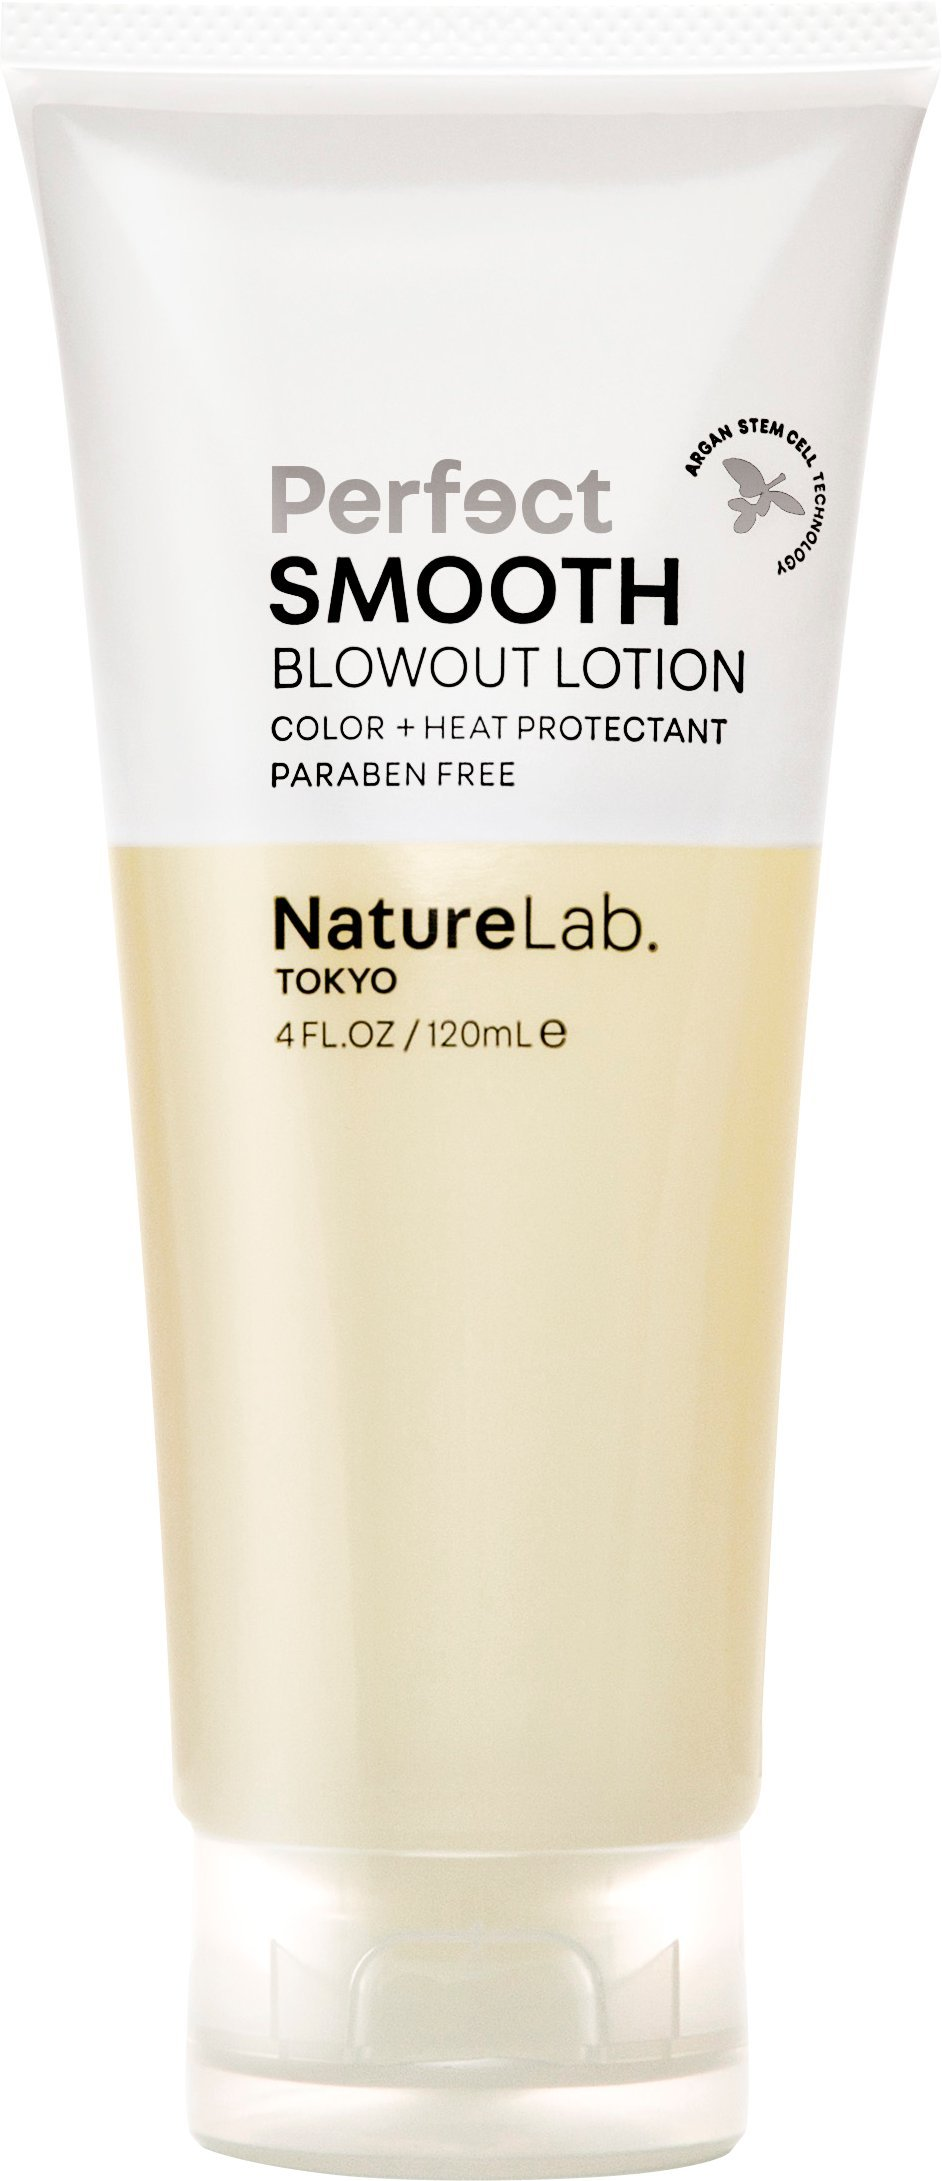 NatureLab. Tokyo - Perfect Smooth Blowout Lotion for frizz-free hair: Cruelty free, heat and color protection- 4.0 fl. oz. by NatureLab